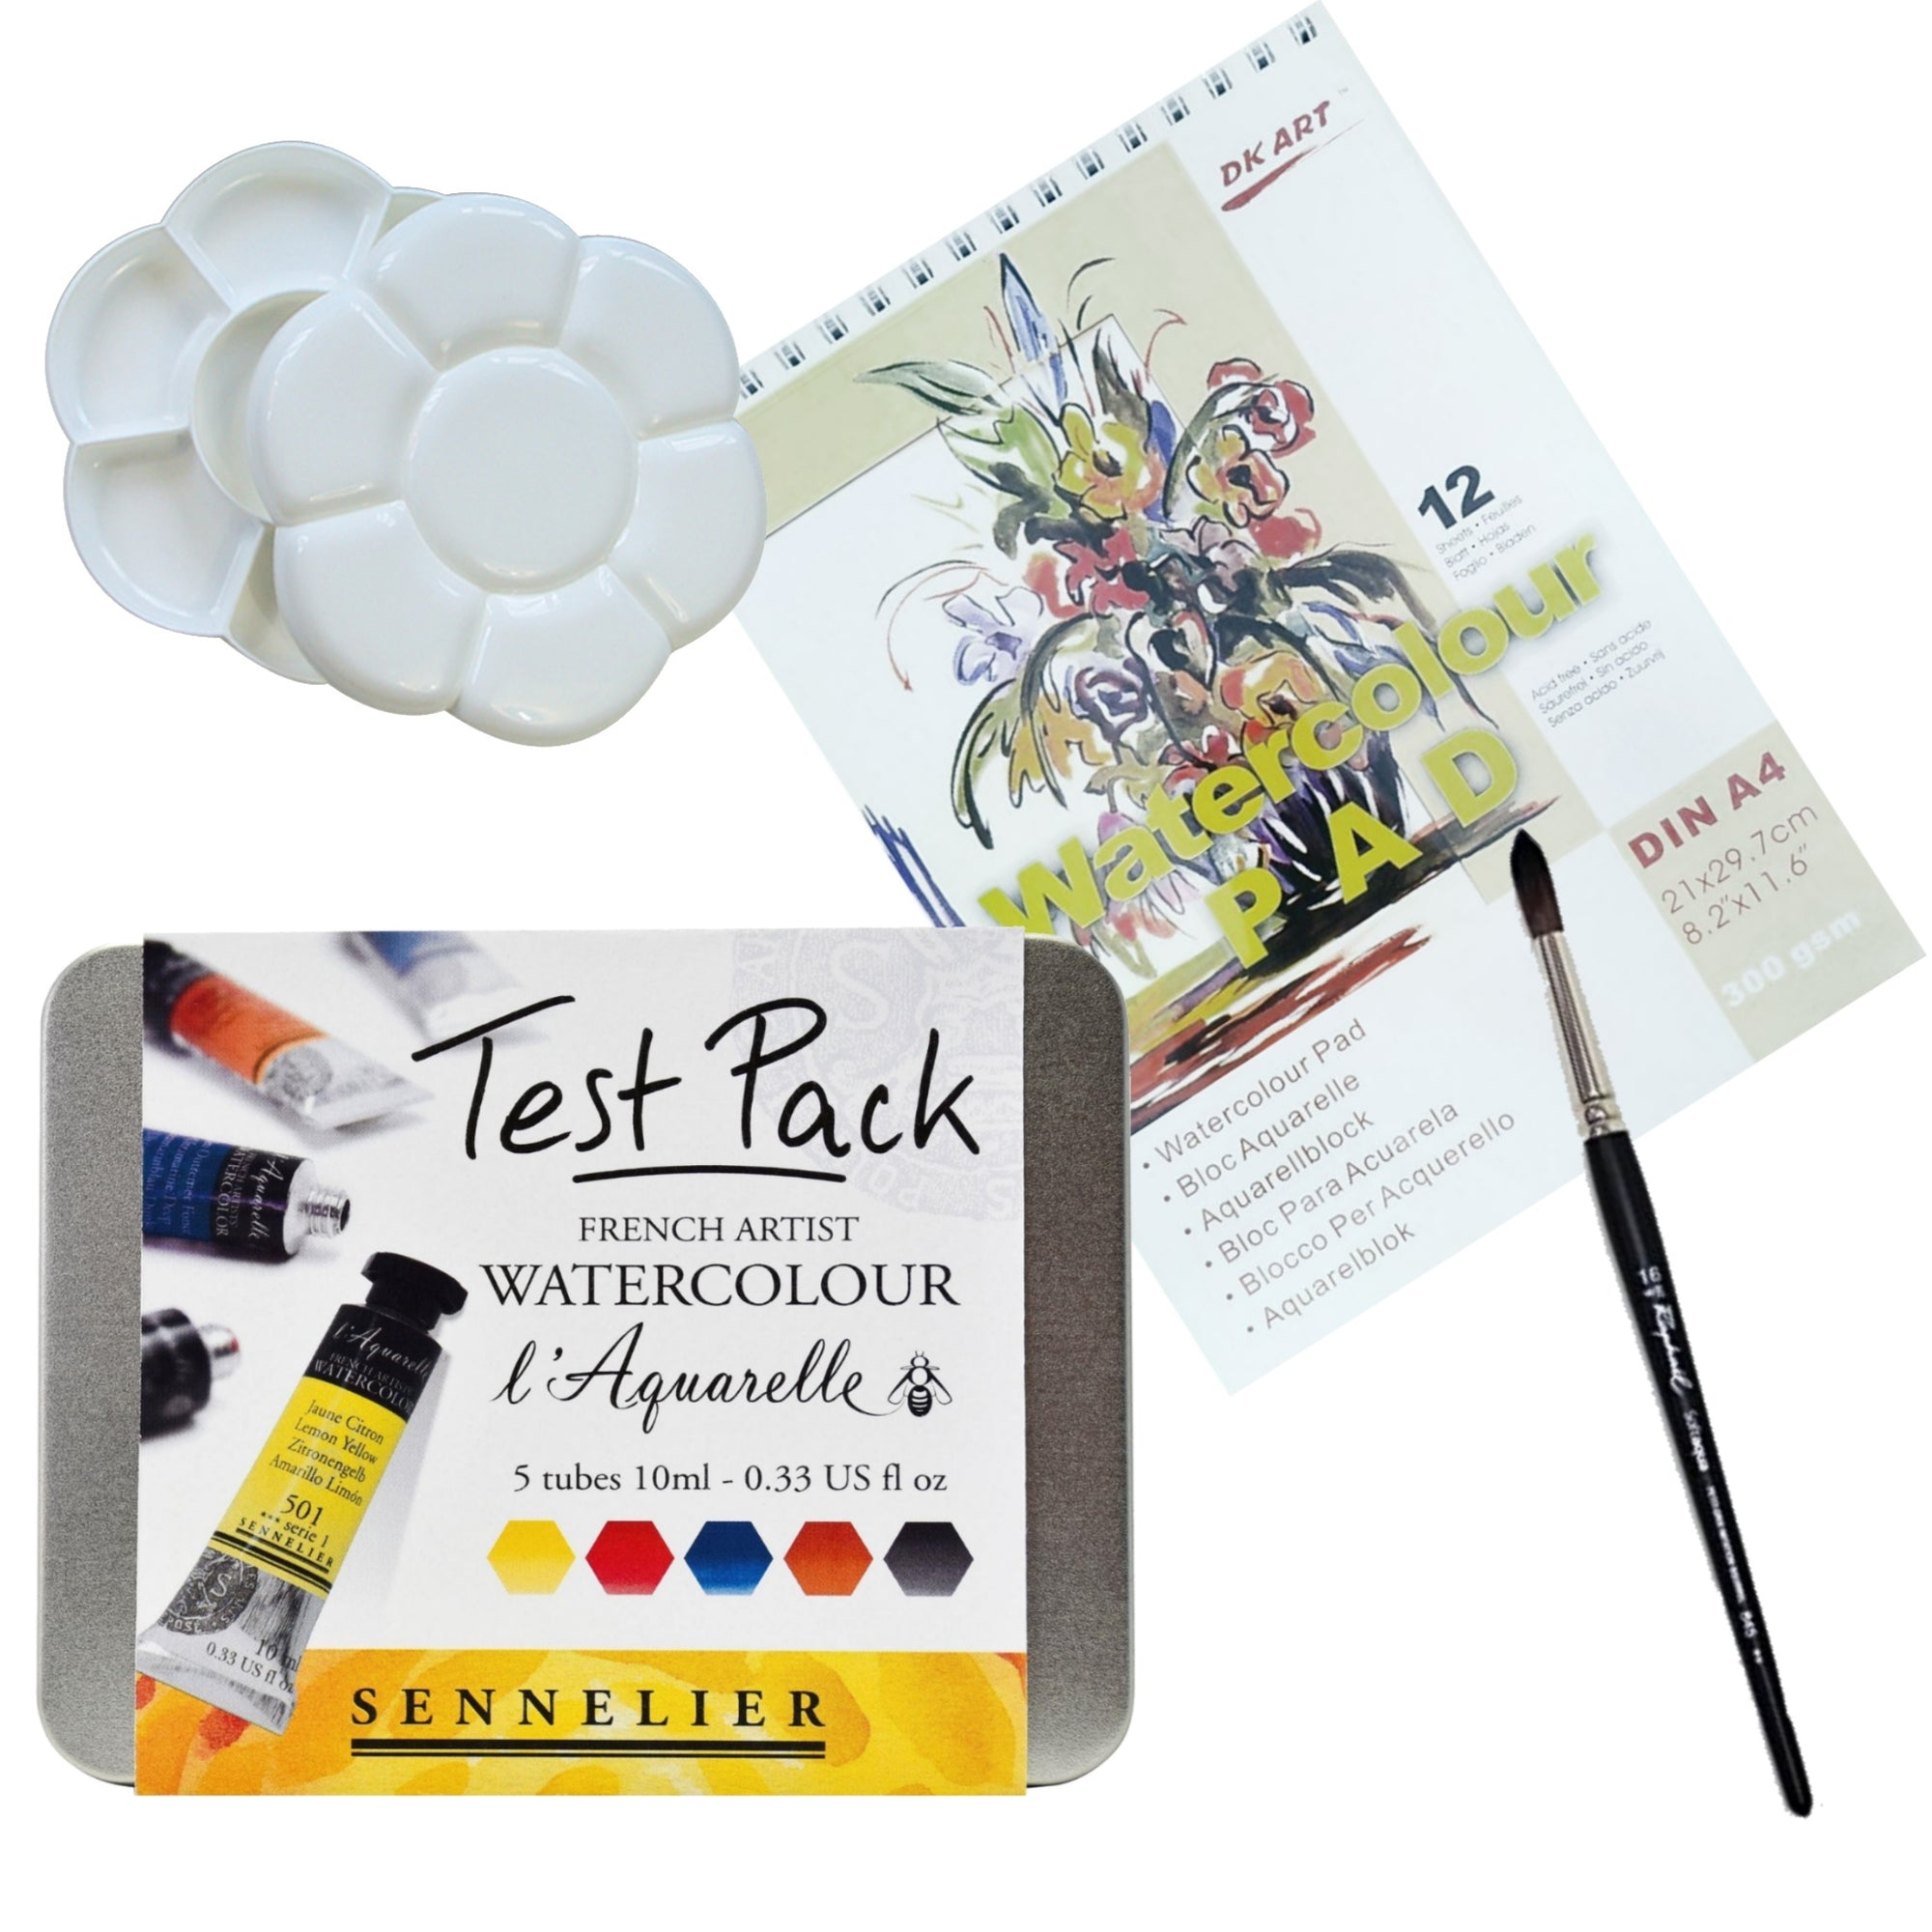 You don't need any art training just this set and a willingness to start a new art adventure. Live inspired every day!  The set includes:  1x Sennelier L'Aquarelle Test Pack - 5 tubes of 10ml 1x Watercolour pad 300gsm x 12 Sheets 1x Raphael Round Brush - 16 1x Double-sided Flower Shaped Plastic Palette - clicks together for easy transport